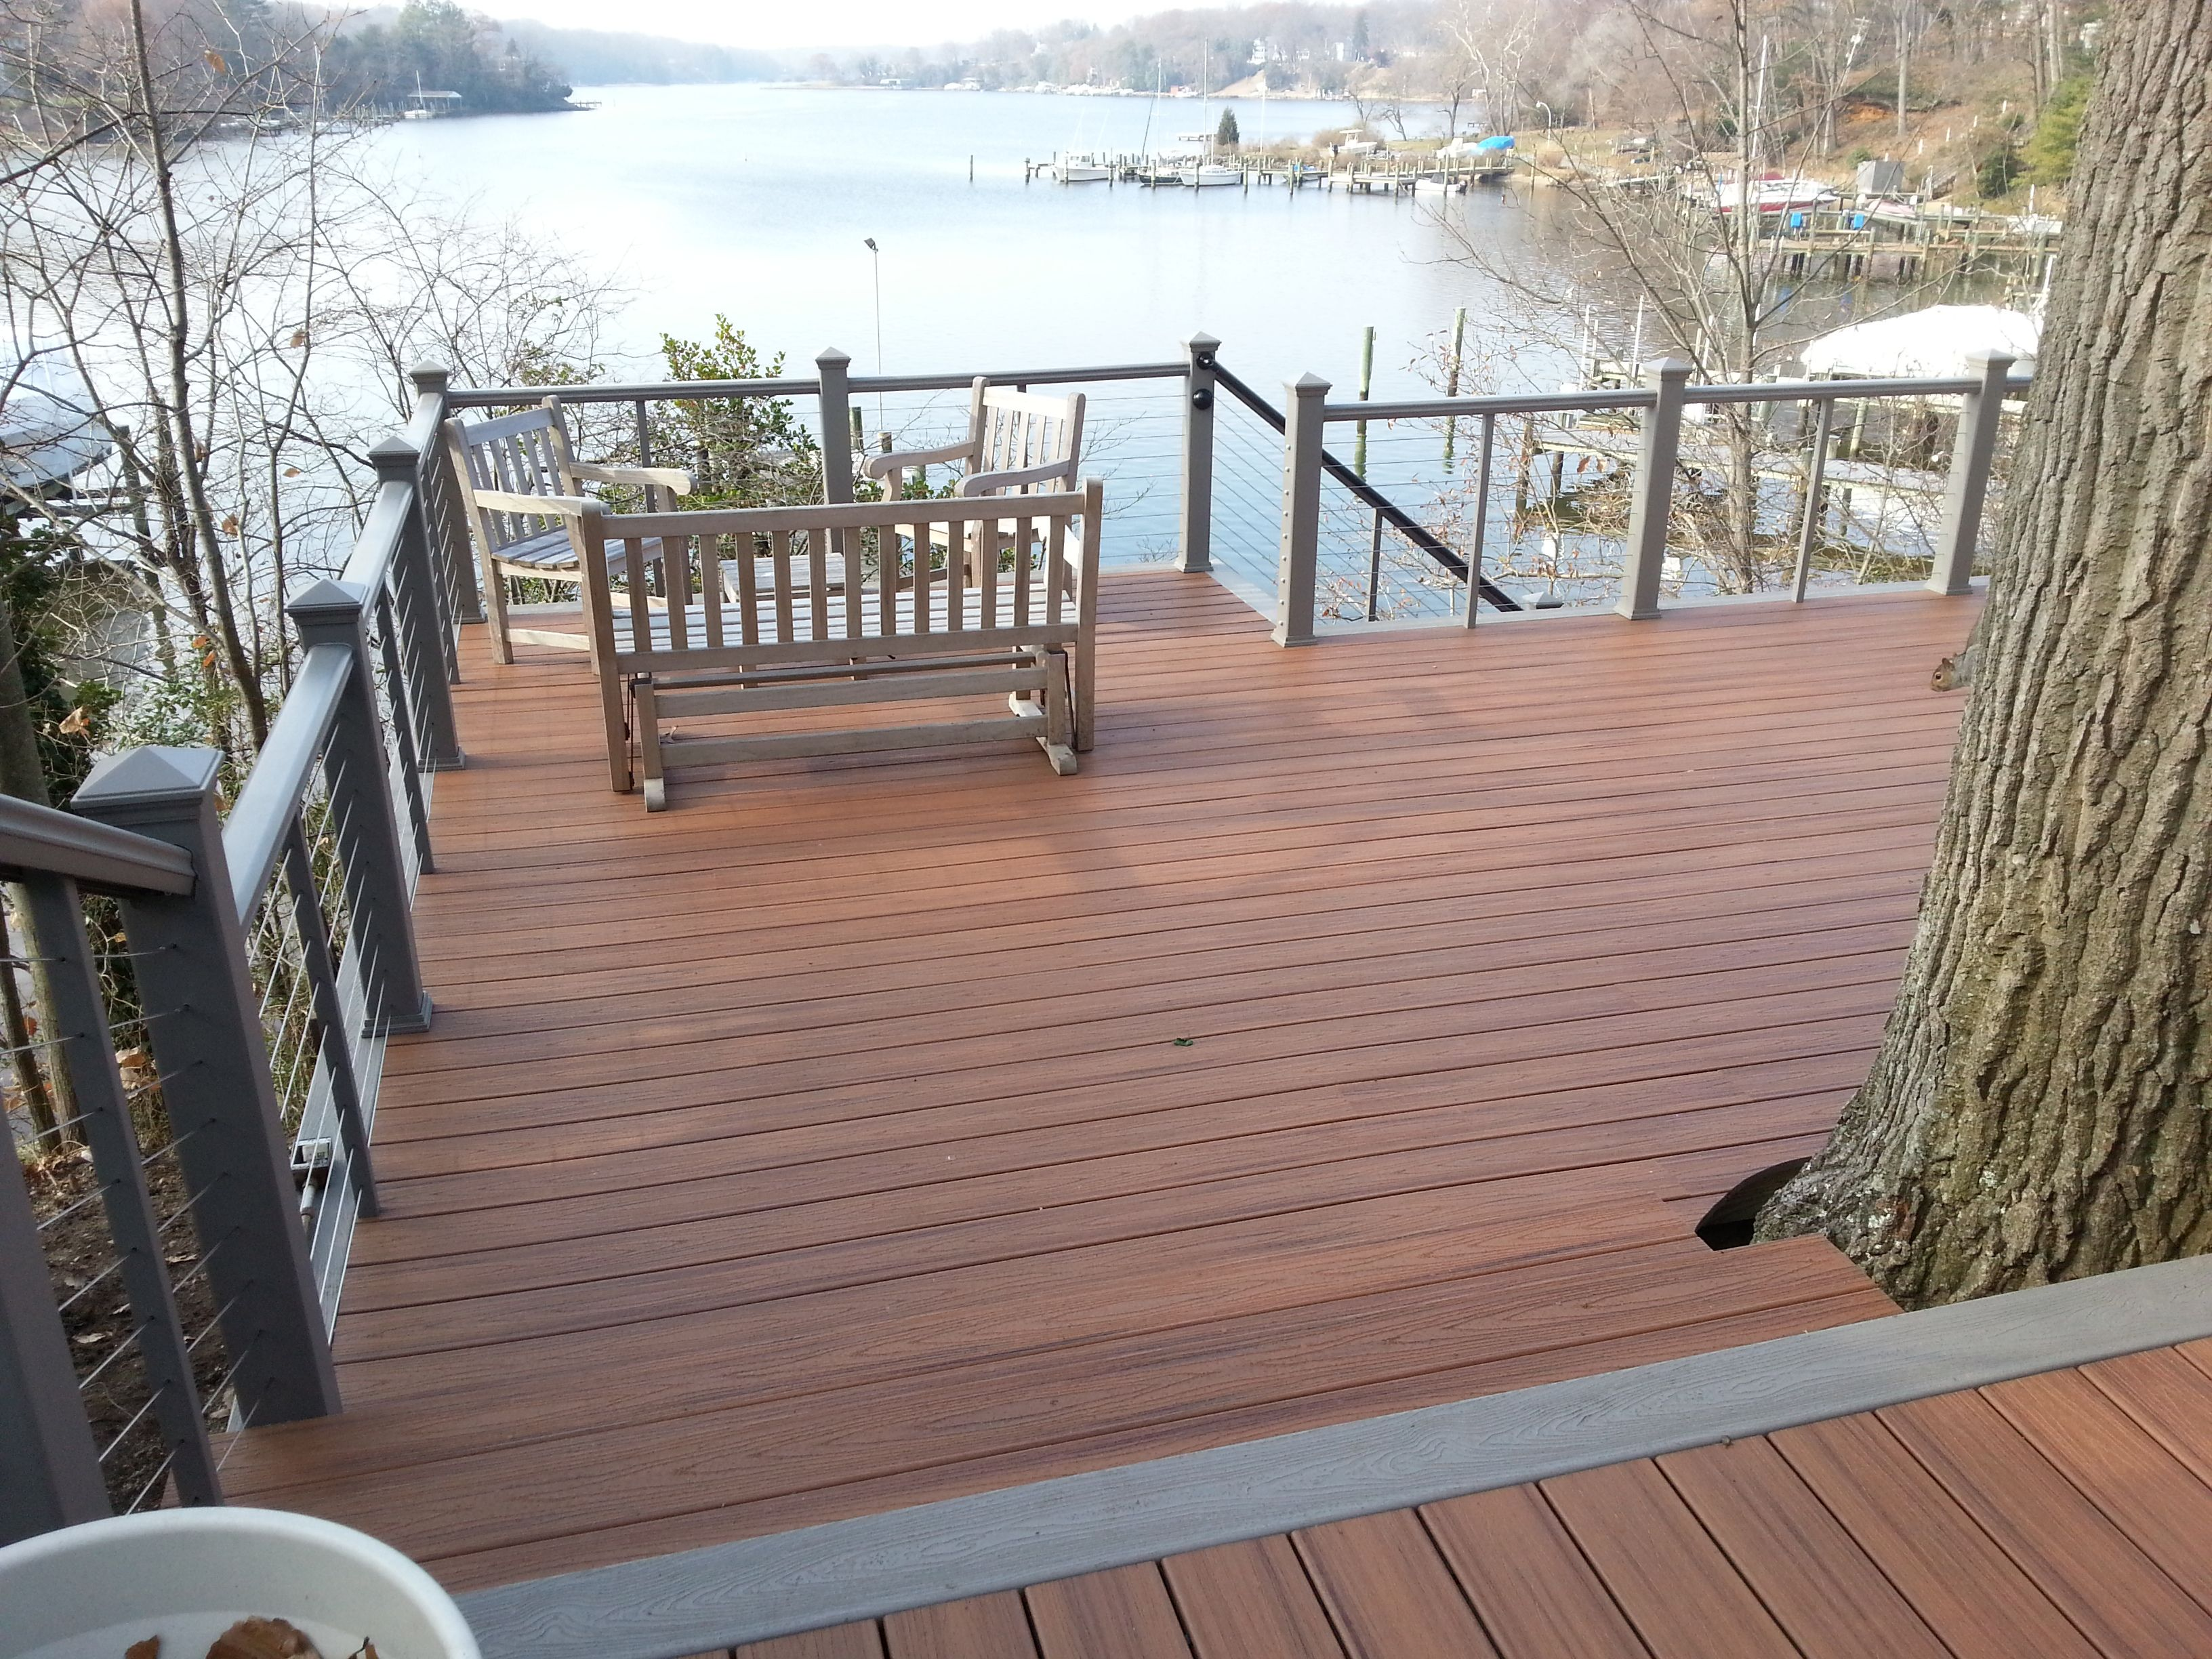 It Doesn T Get Much Better Than Decking Right On The Water Built By Trexpro Rz And Deck Connection Fence In Millersville Md Check Out